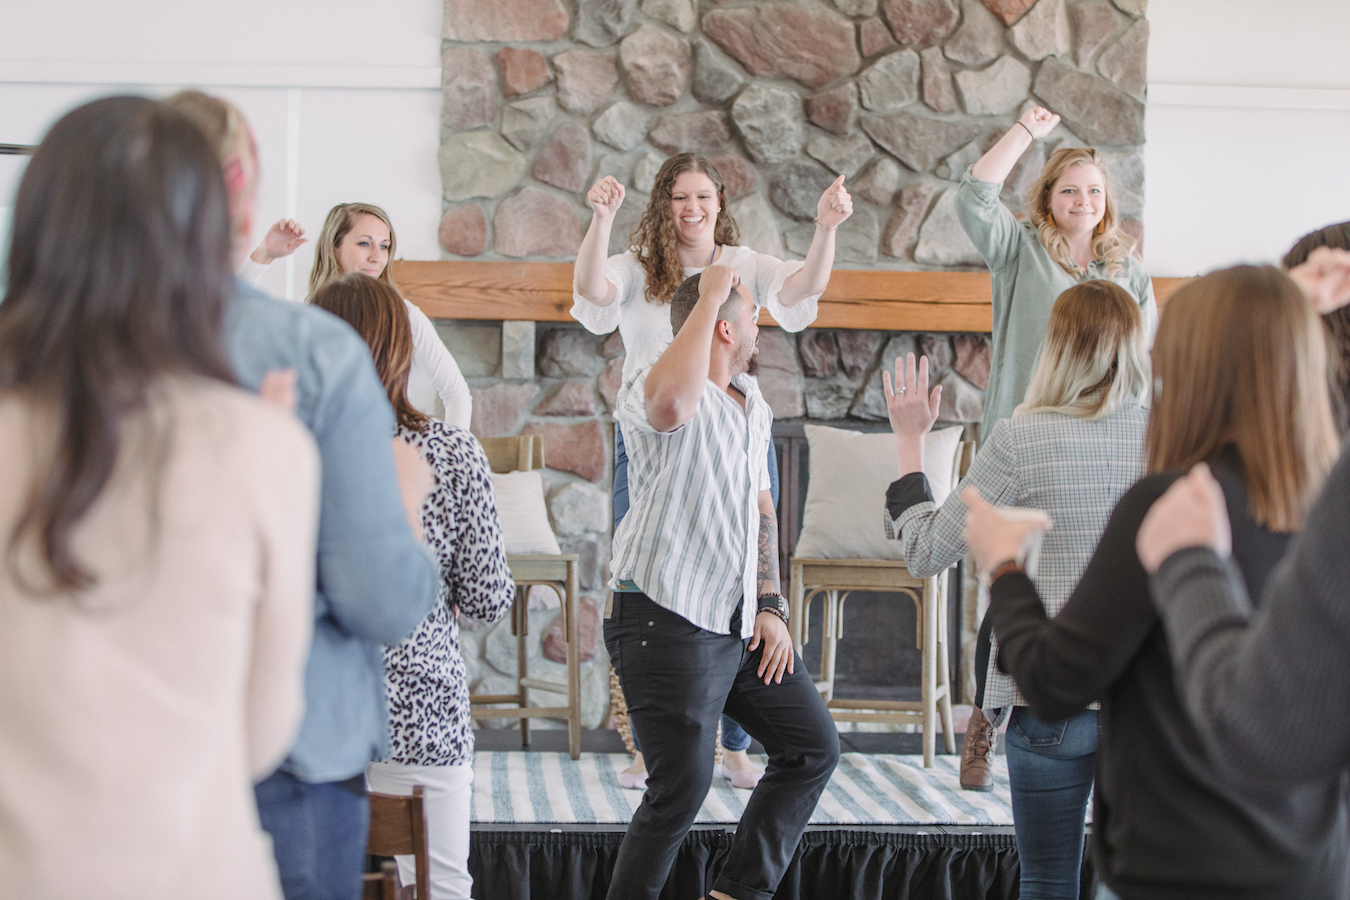 Attendees smiling and dancing at The Haven Conference